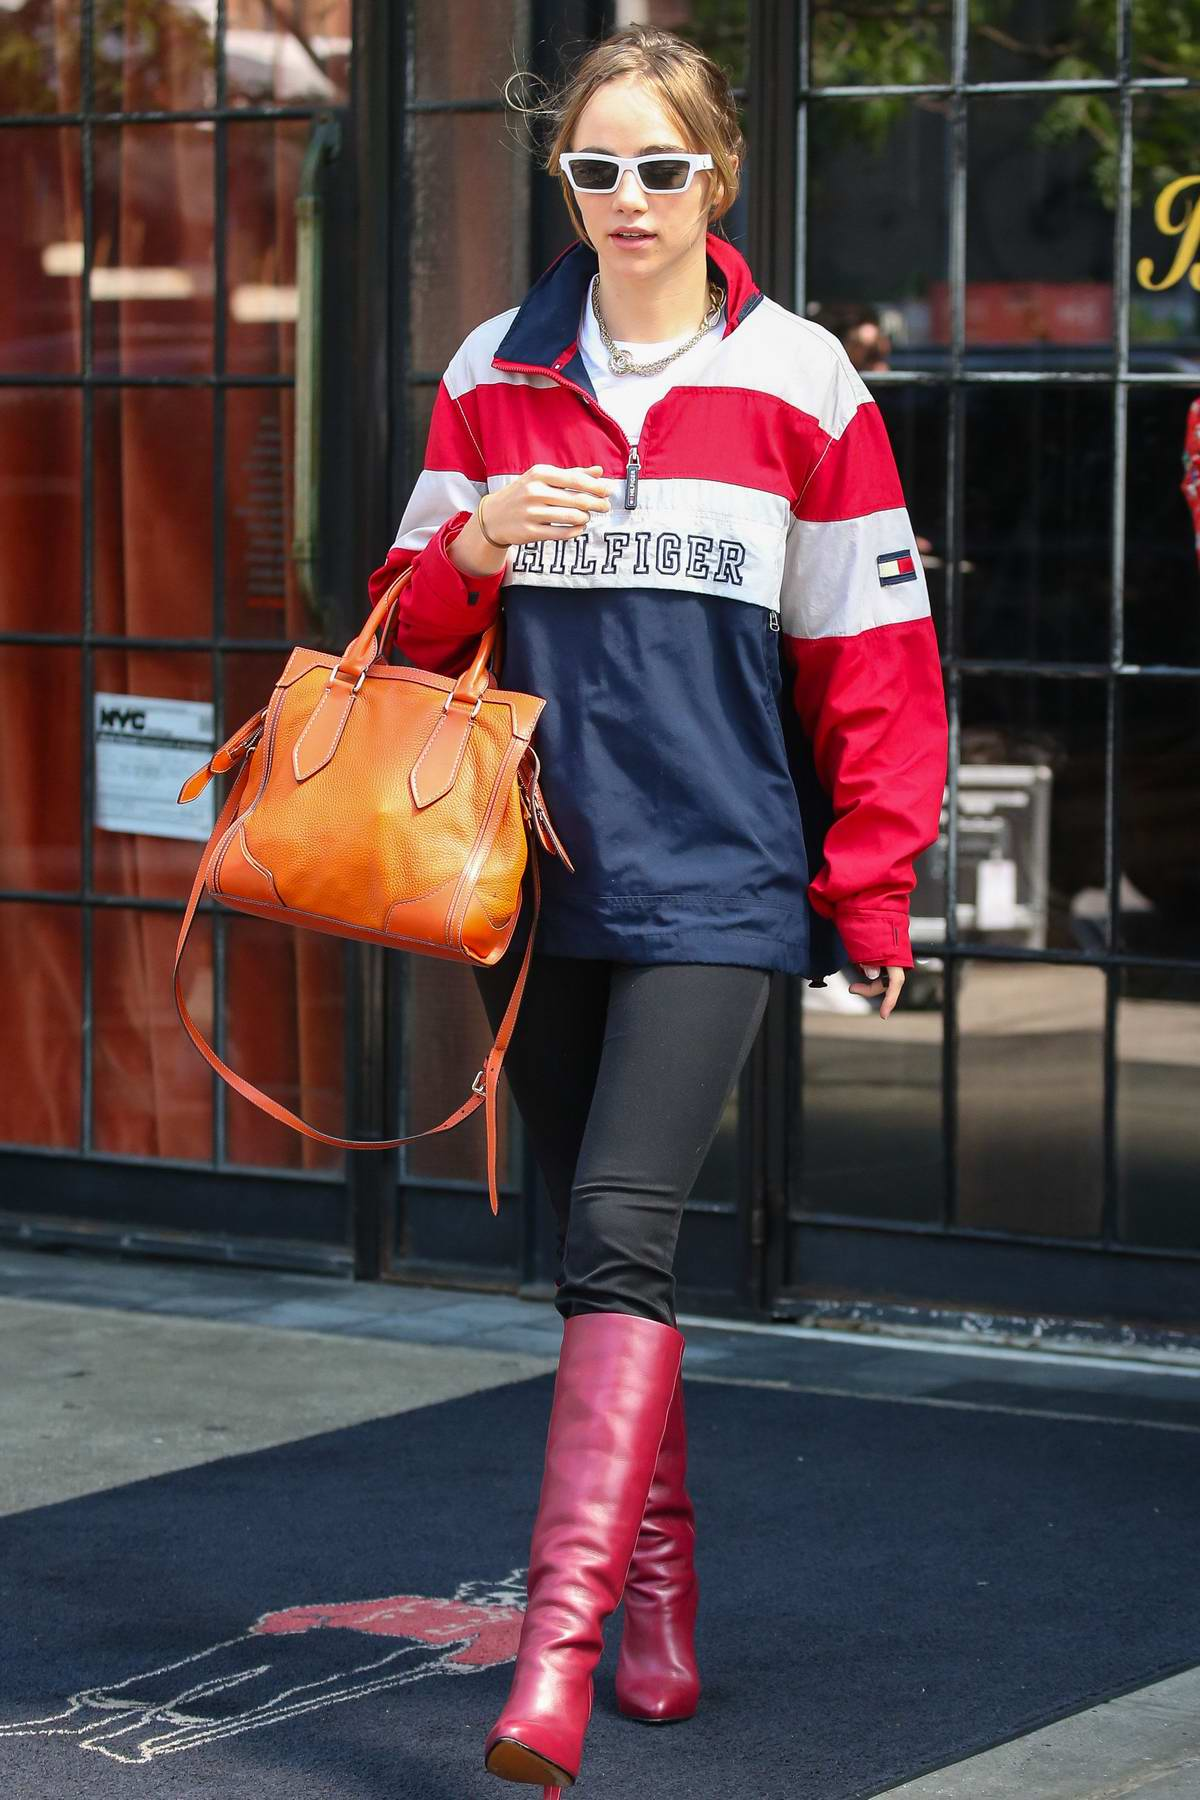 Suki Waterhouse rocks Hilfiger pullover with a black pants and knee high burgundy boots as she steps out in New York City